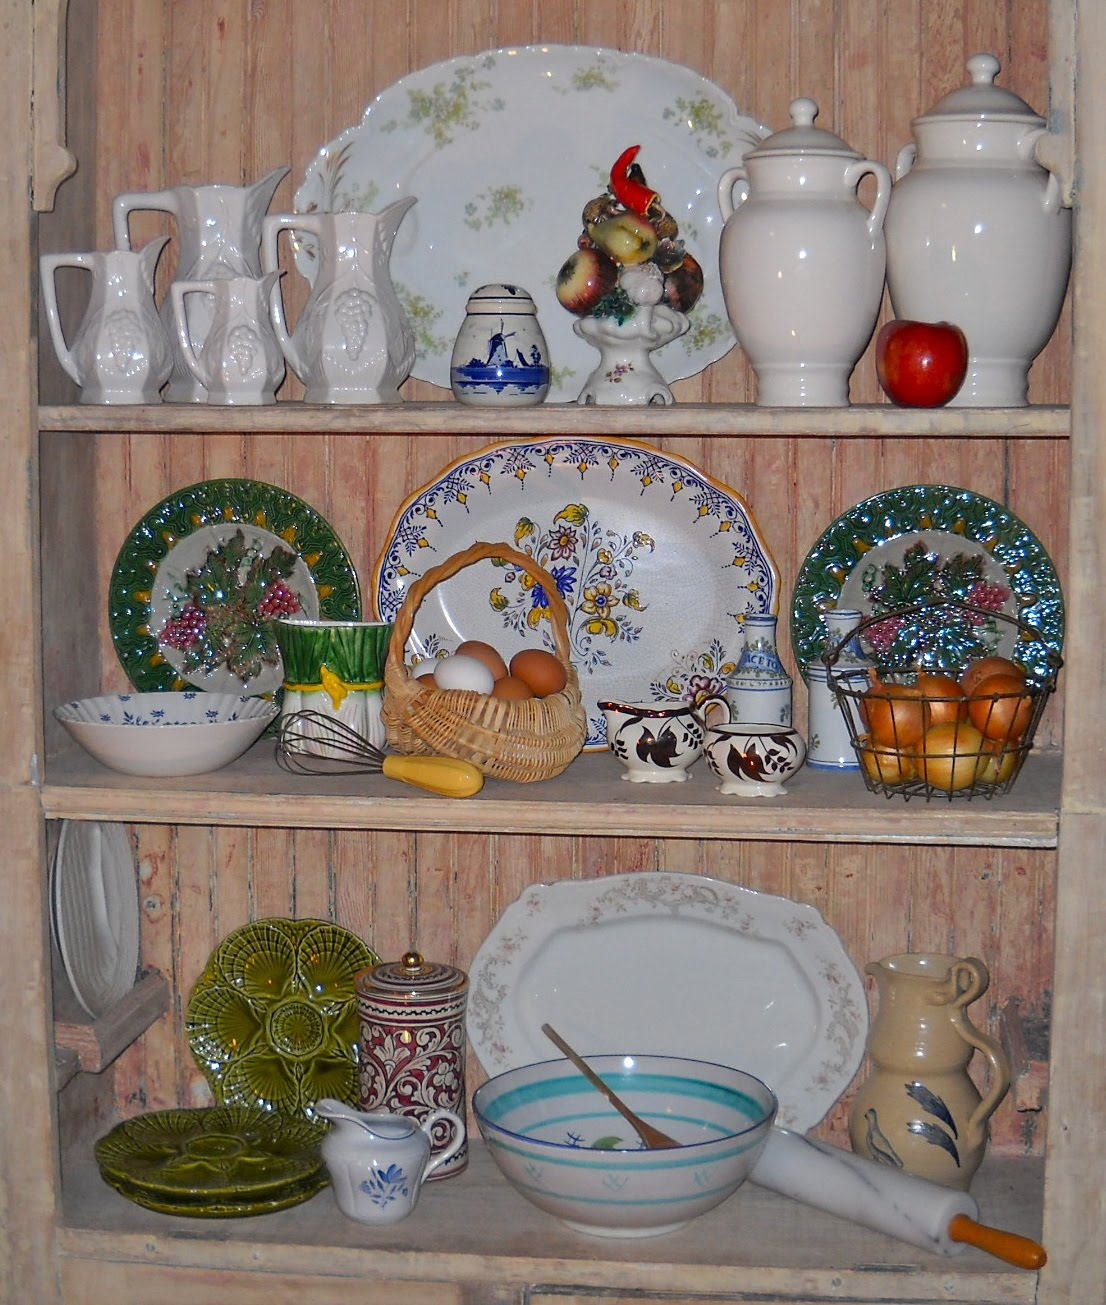 Country Kitchen Accessories: Knickerbocker Style & Design: Eclectic Country Kitchen Decor